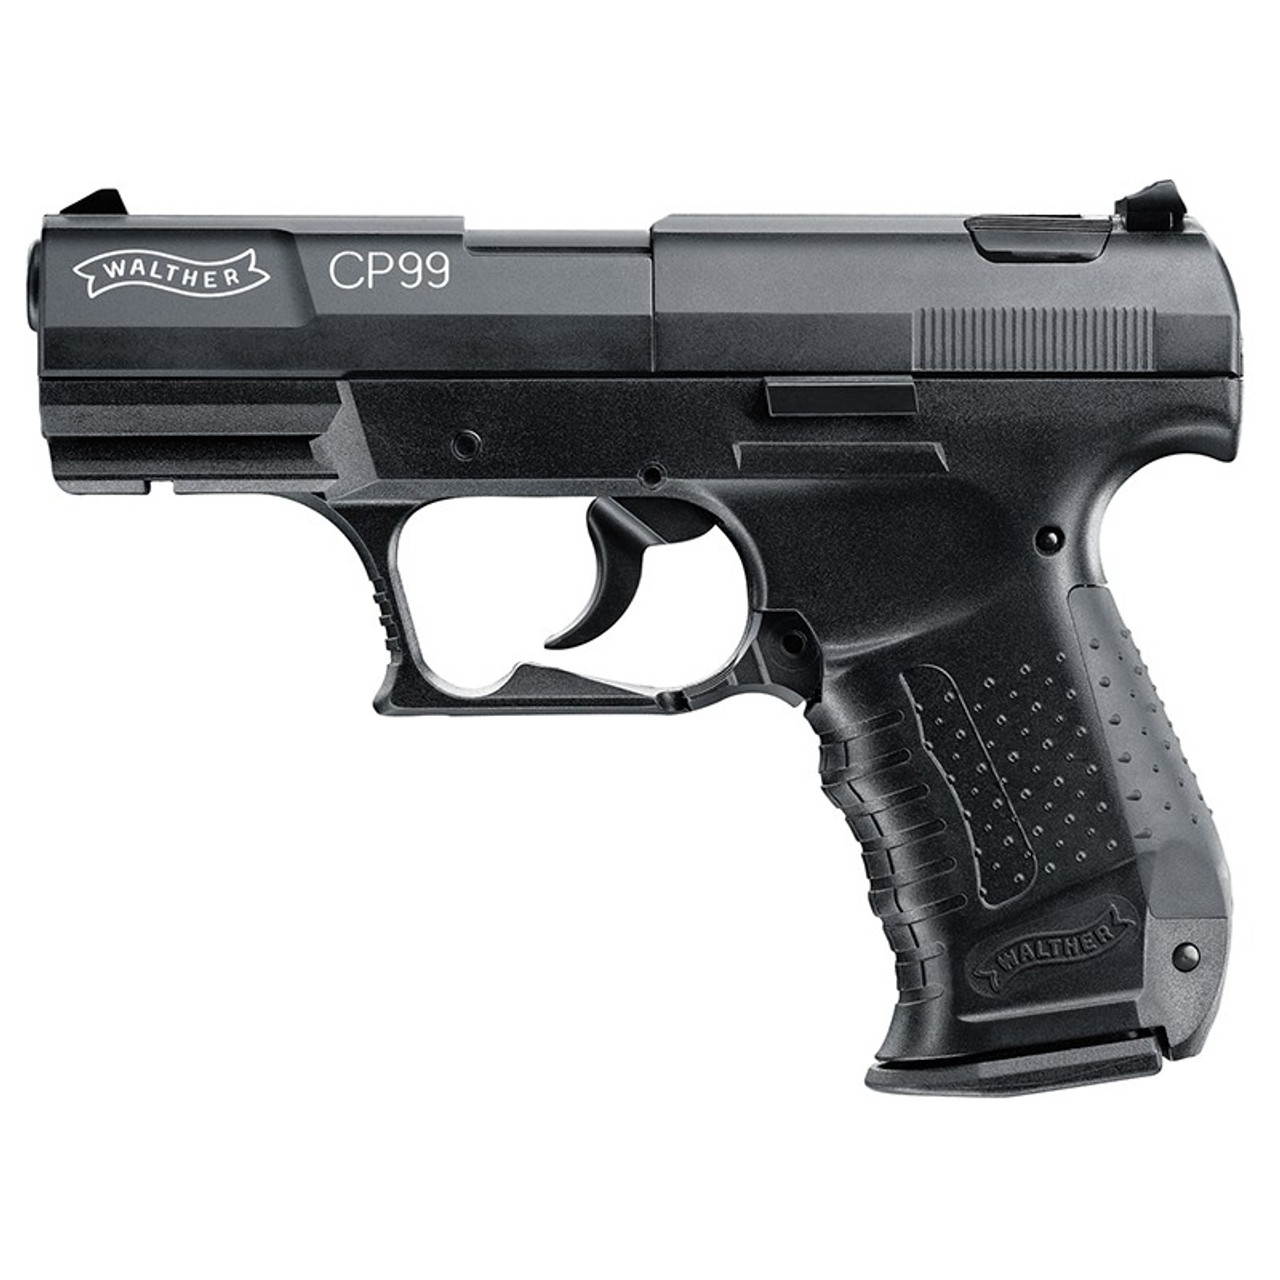 Umarex Walther CP99 CO2 Pistol